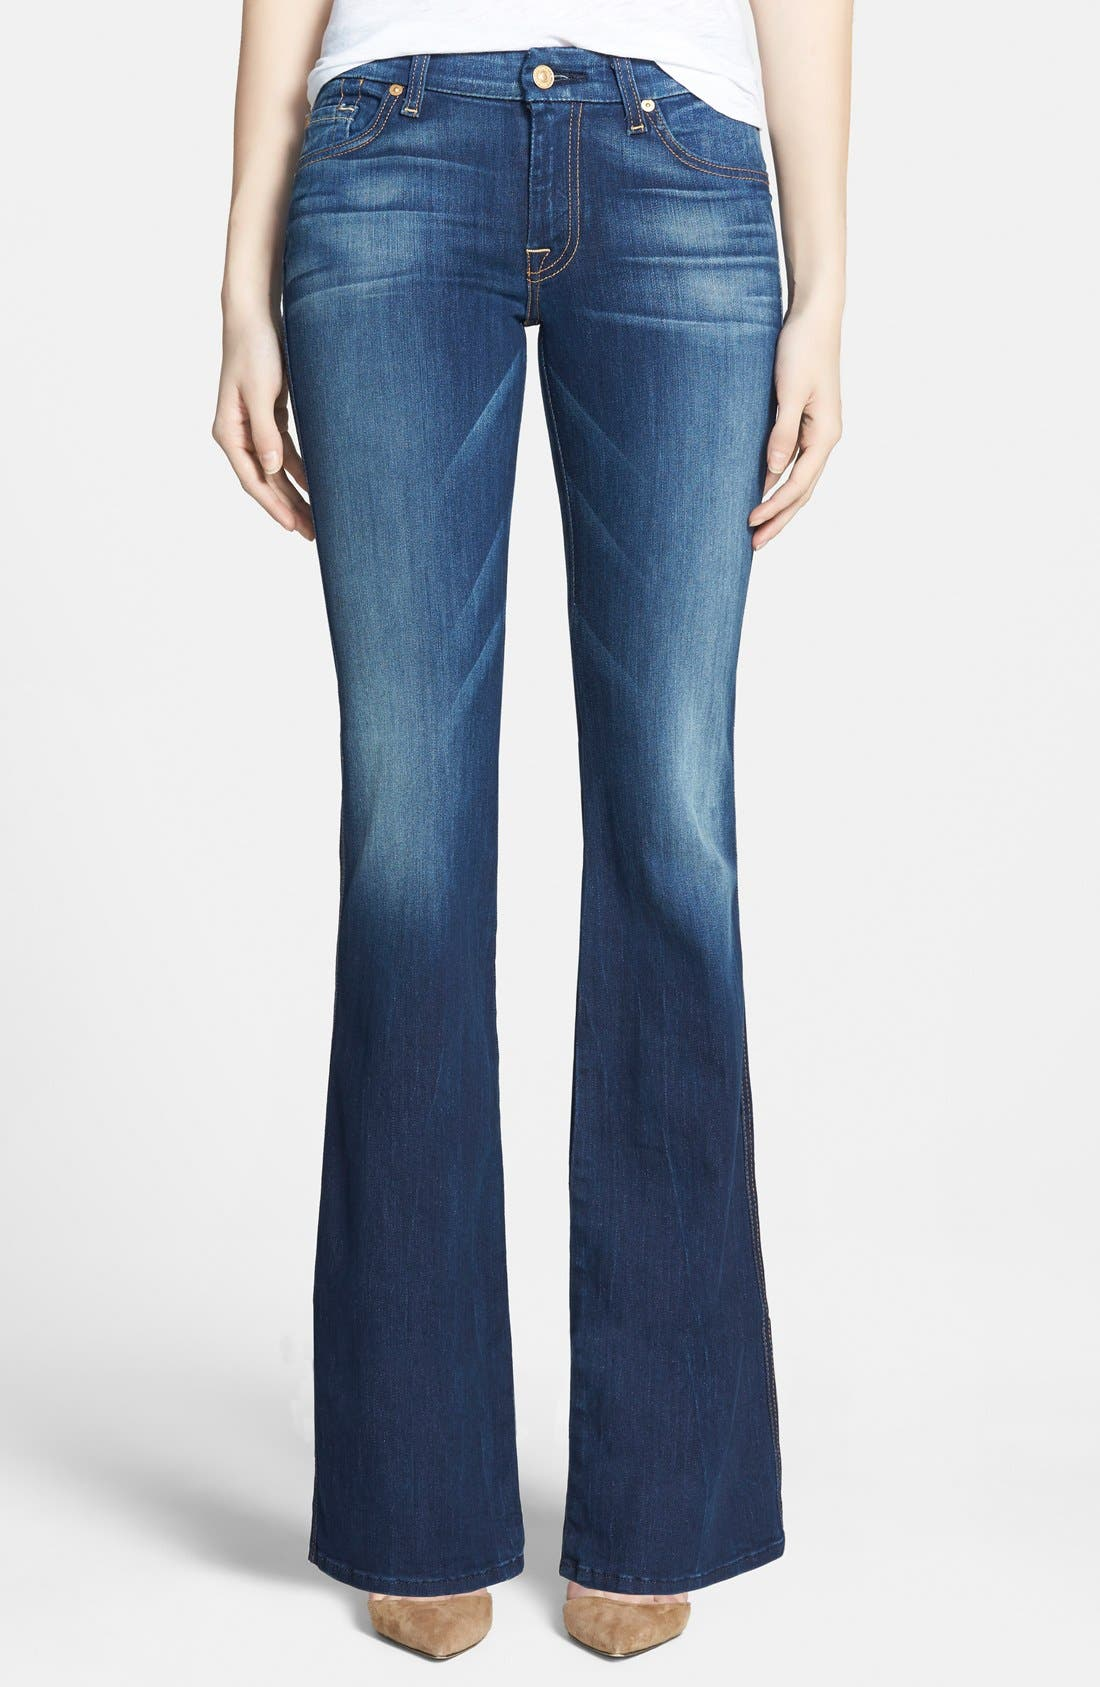 Main Image - 7 For All Mankind® 'Lexie' Bootcut Stretch Jeans (Aggressive Siren) (Petite)